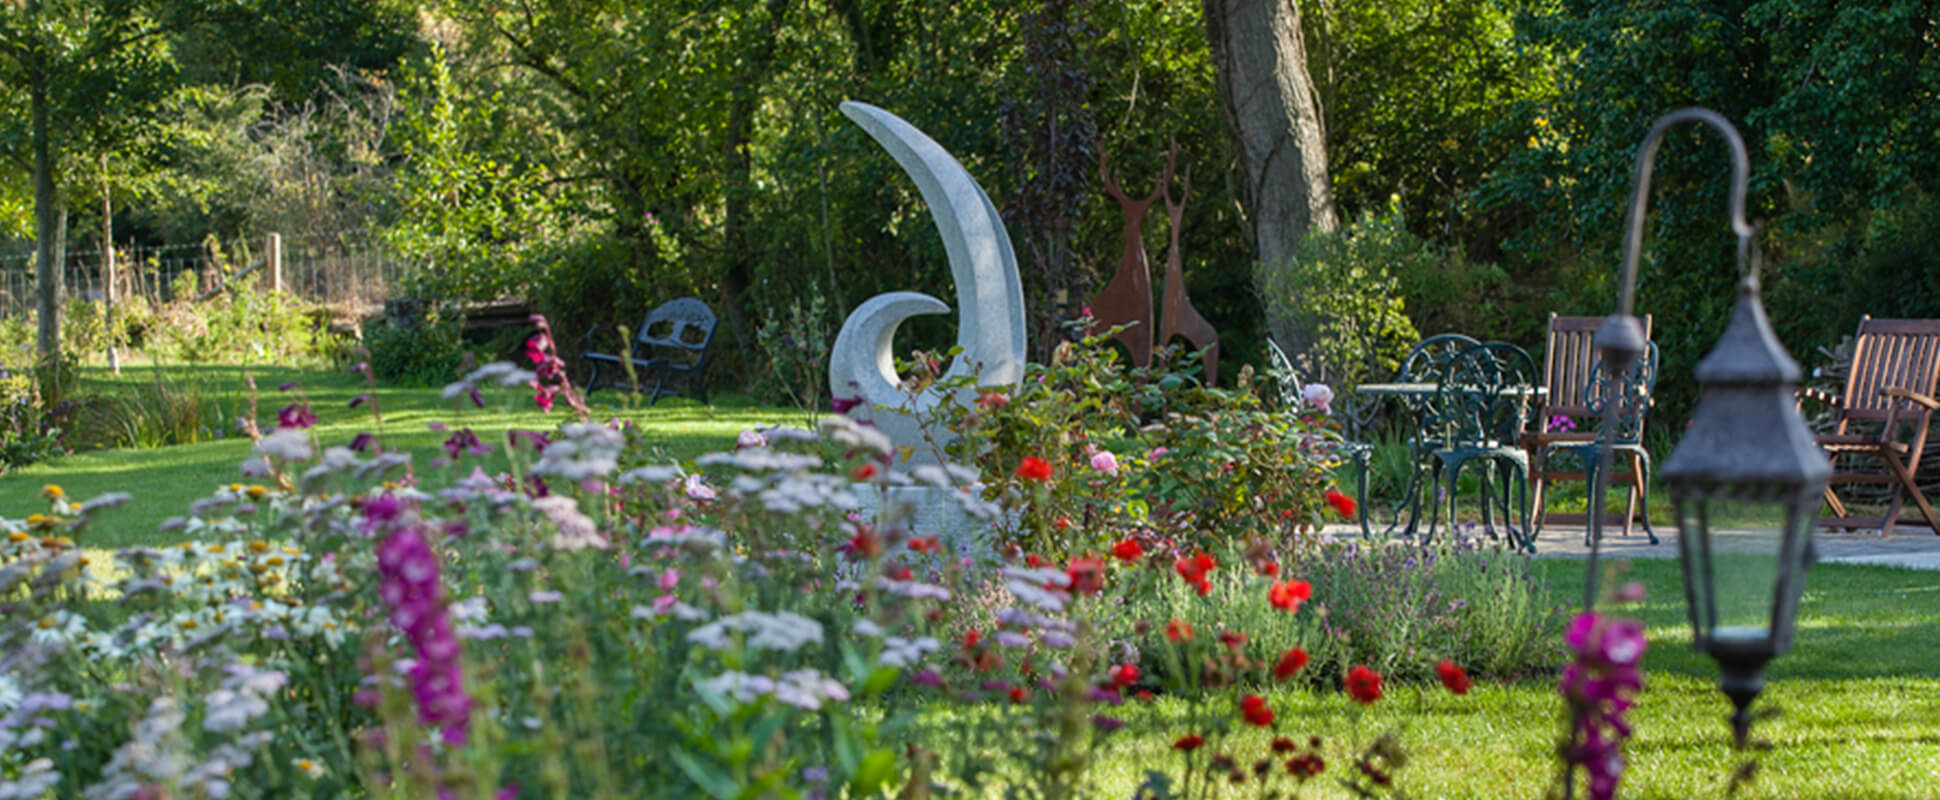 A garden featuring sculptures and garden furniture